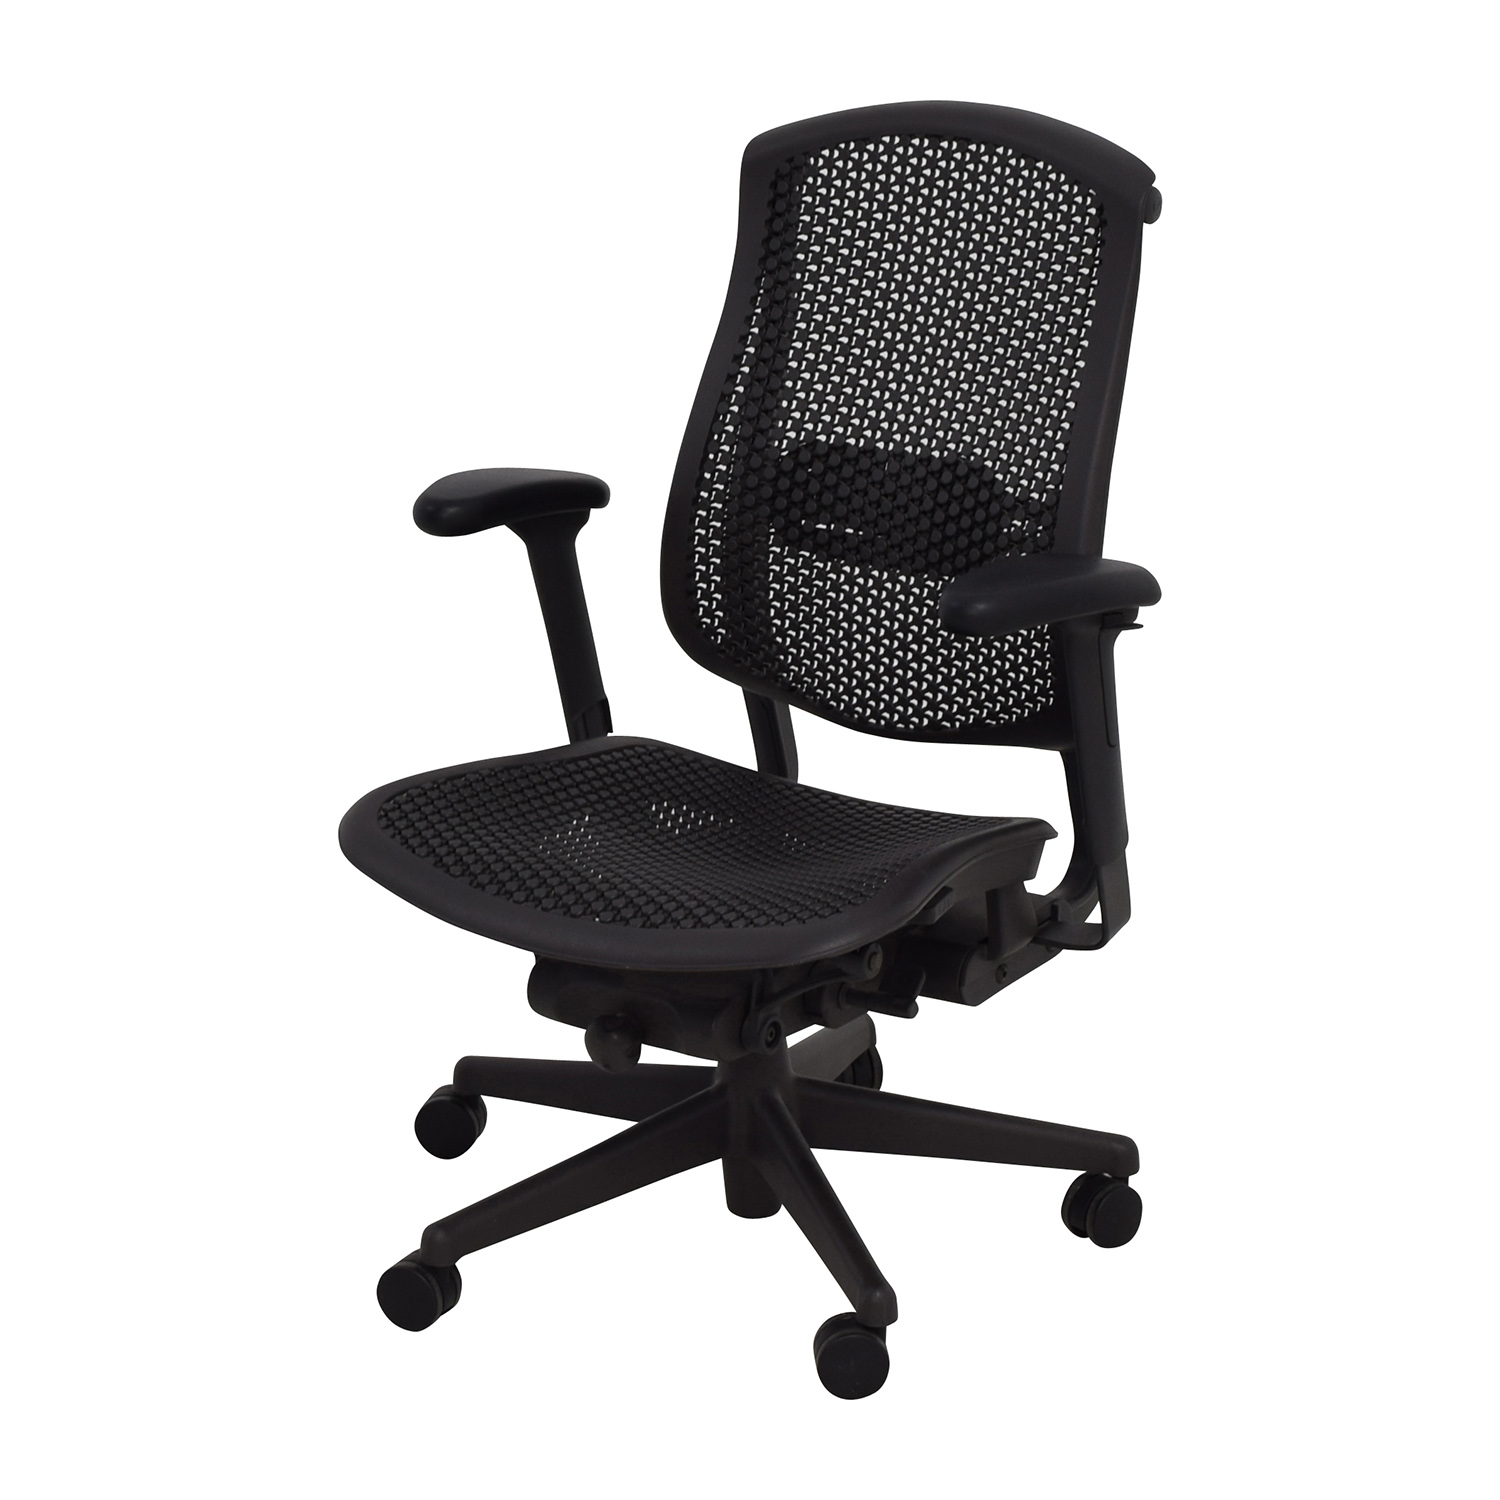 ... Herman Miller Herman Miller Biomorph Ergonomic Black Desk Chair Home  Office Chairs ...